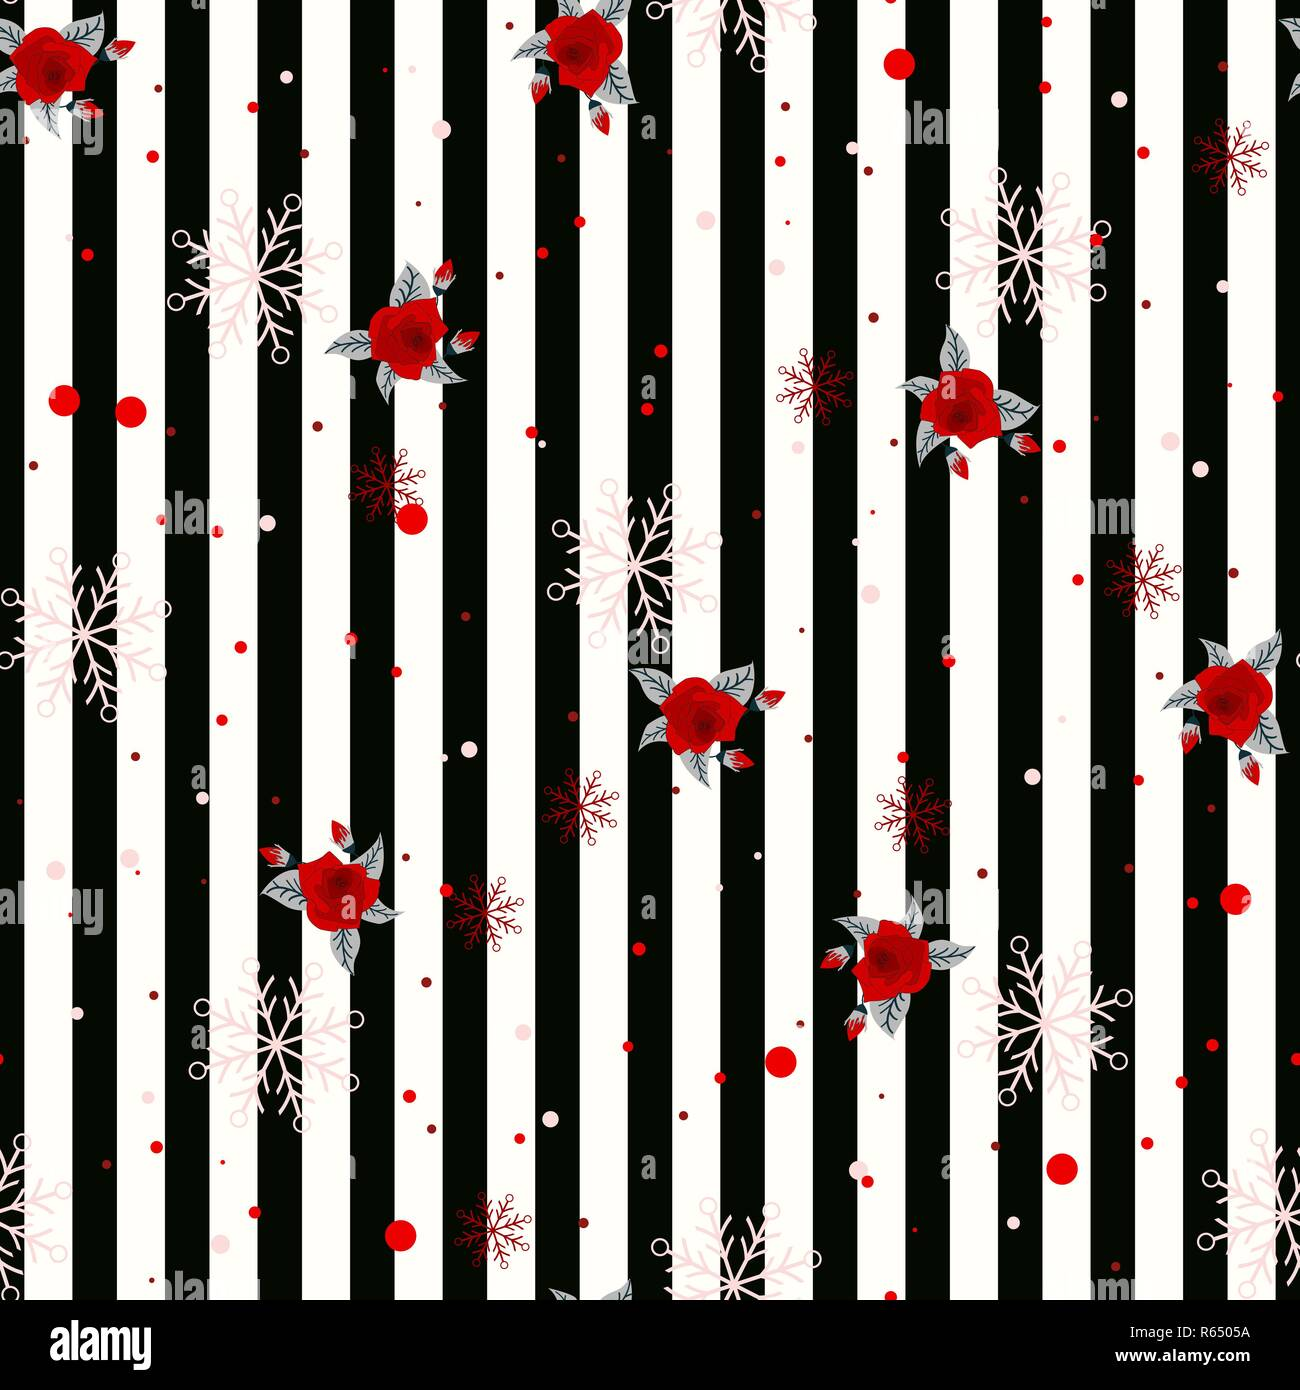 Abstract Seamless Geometric Horizontal Striped Pattern With Black And White Stripes Flower And Snowflake Vector Illustration Eps 10 Stock Vector Image Art Alamy